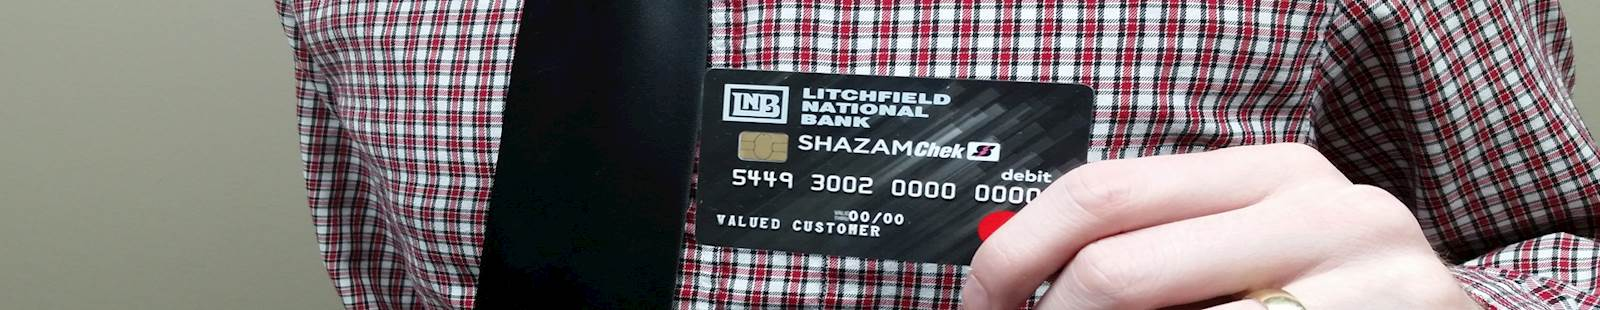 LNB Card tie man new card